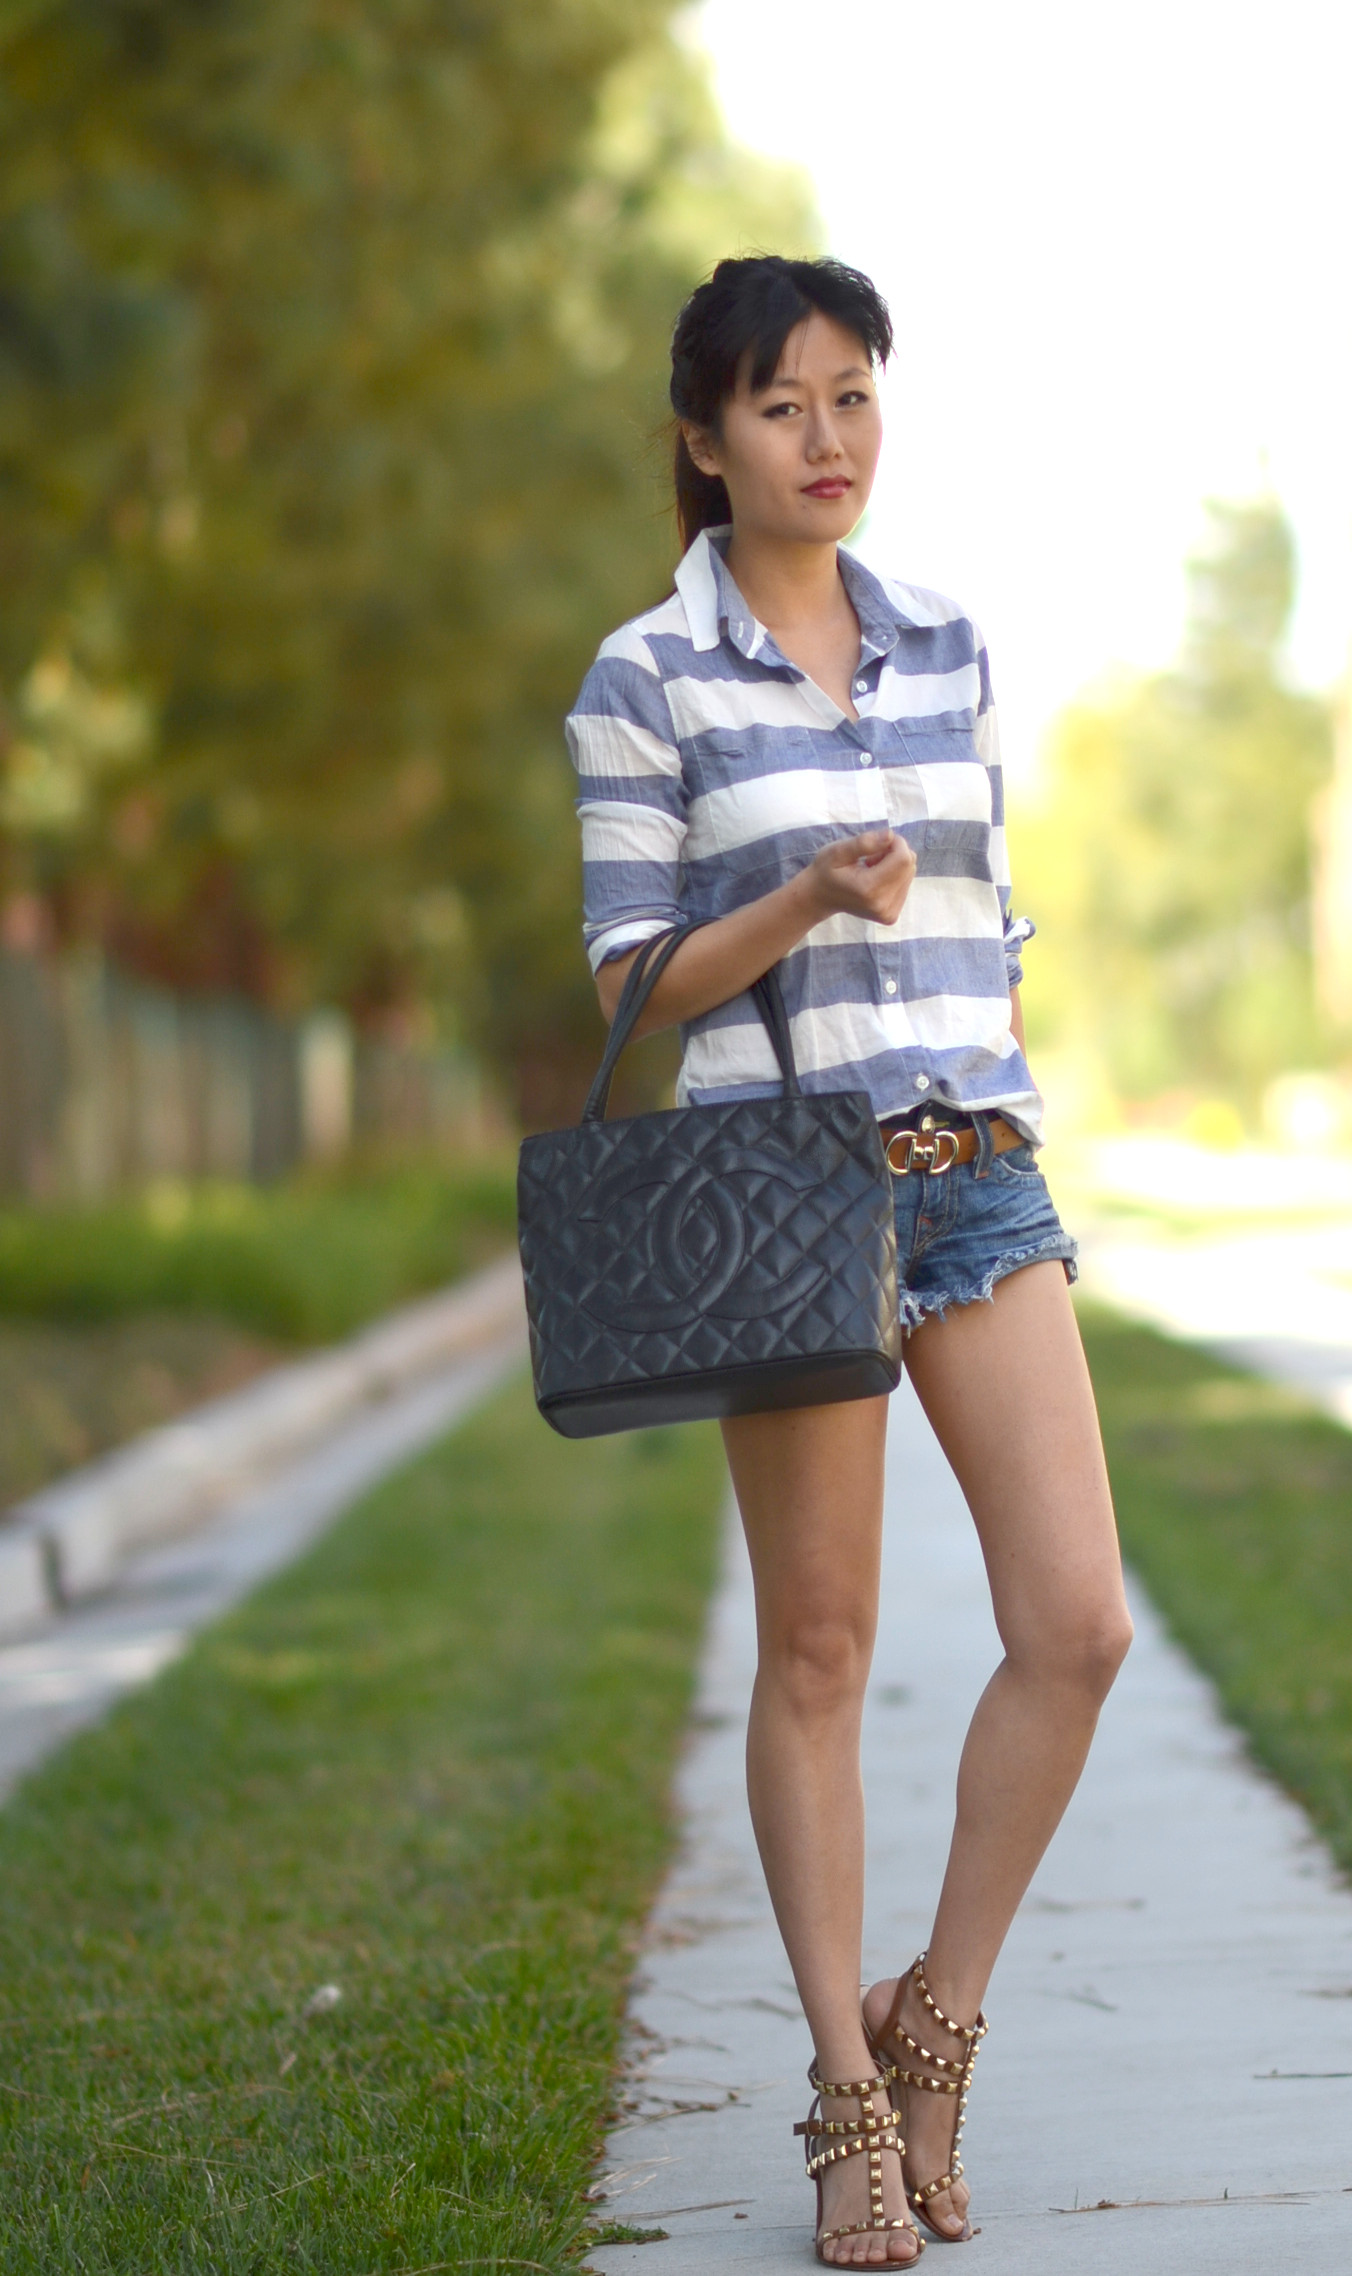 cutoff shorts with chunk block heel high sandals